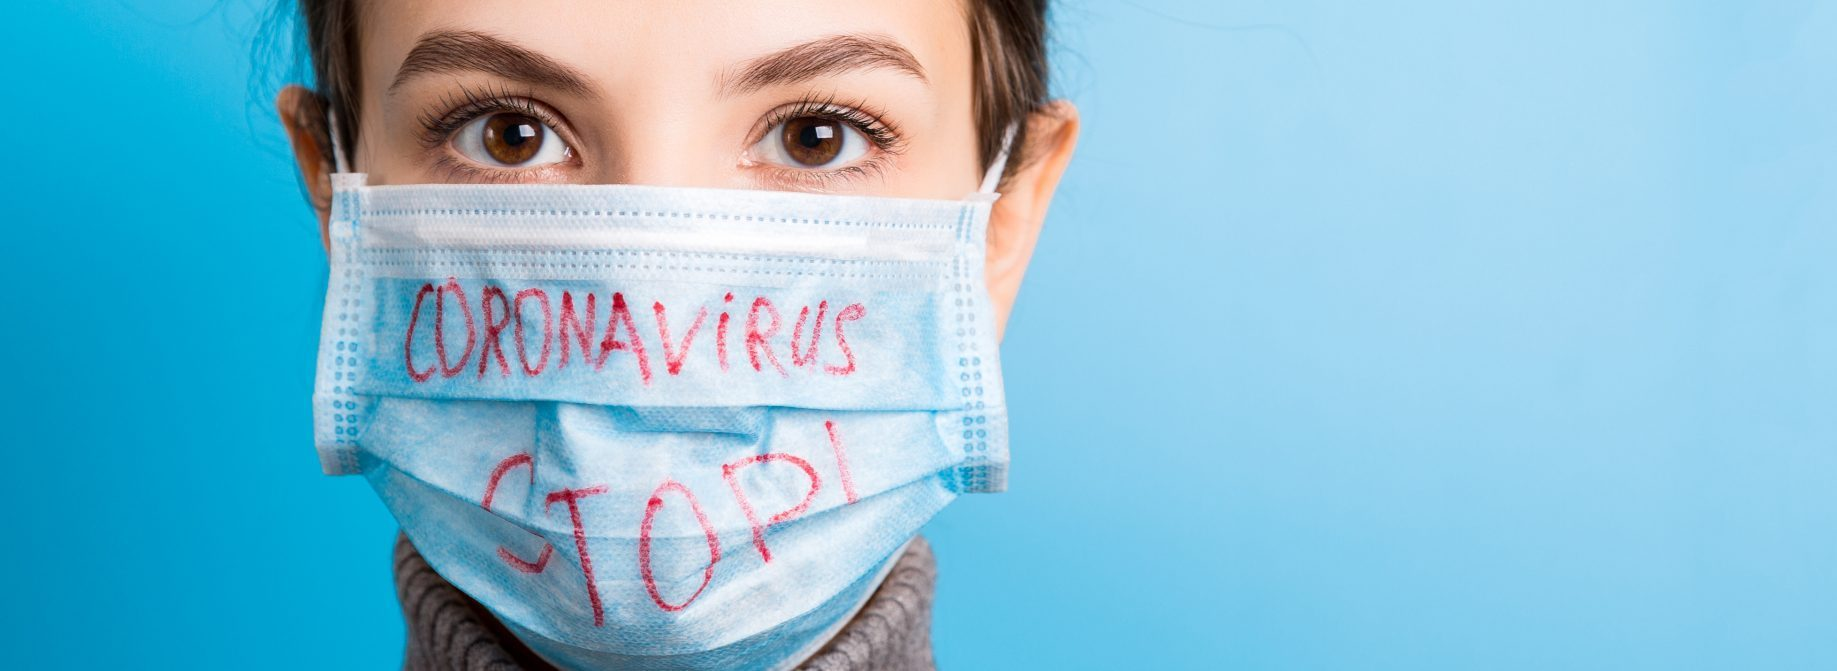 Portrait of a woman in medical mask with stop coronavirus text at blue background. Coronavirus concept. Respiratory protection